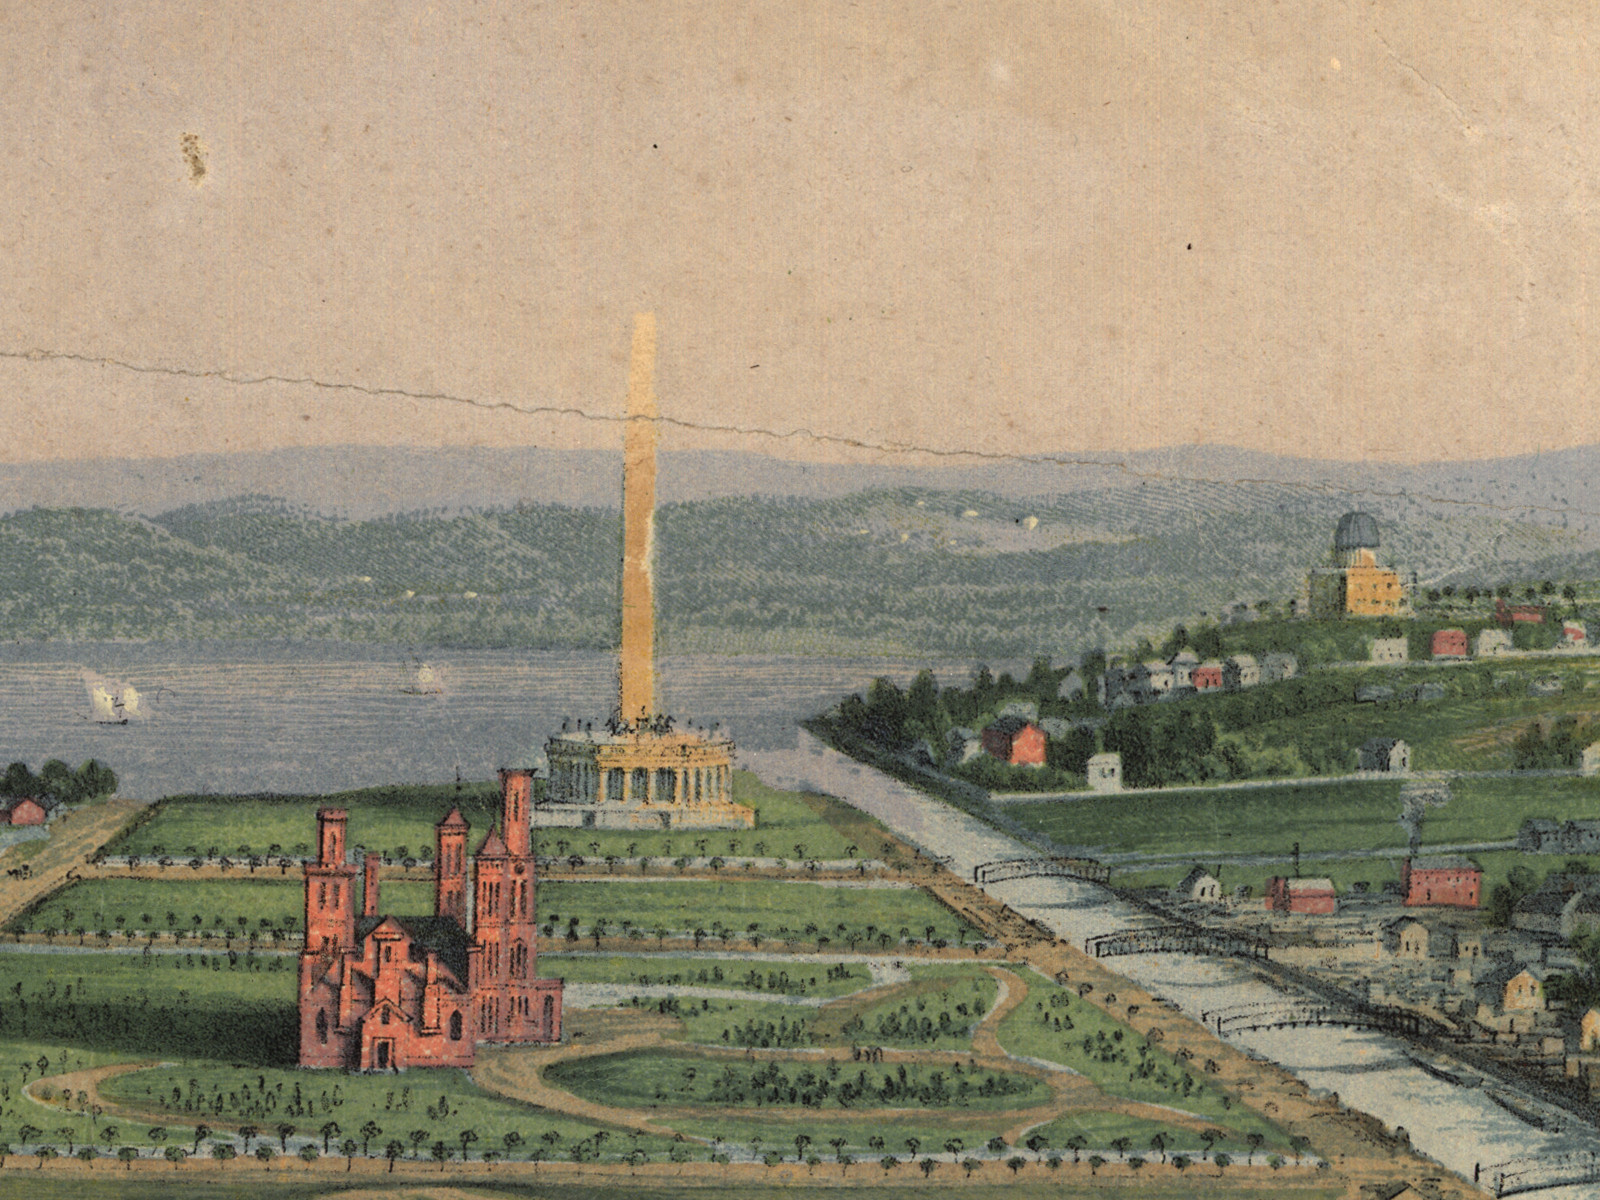 Detail of Washington Monument in the 1852 painting, with the Smithsonian Castle in foreground and the Old Naval Observatory at right.